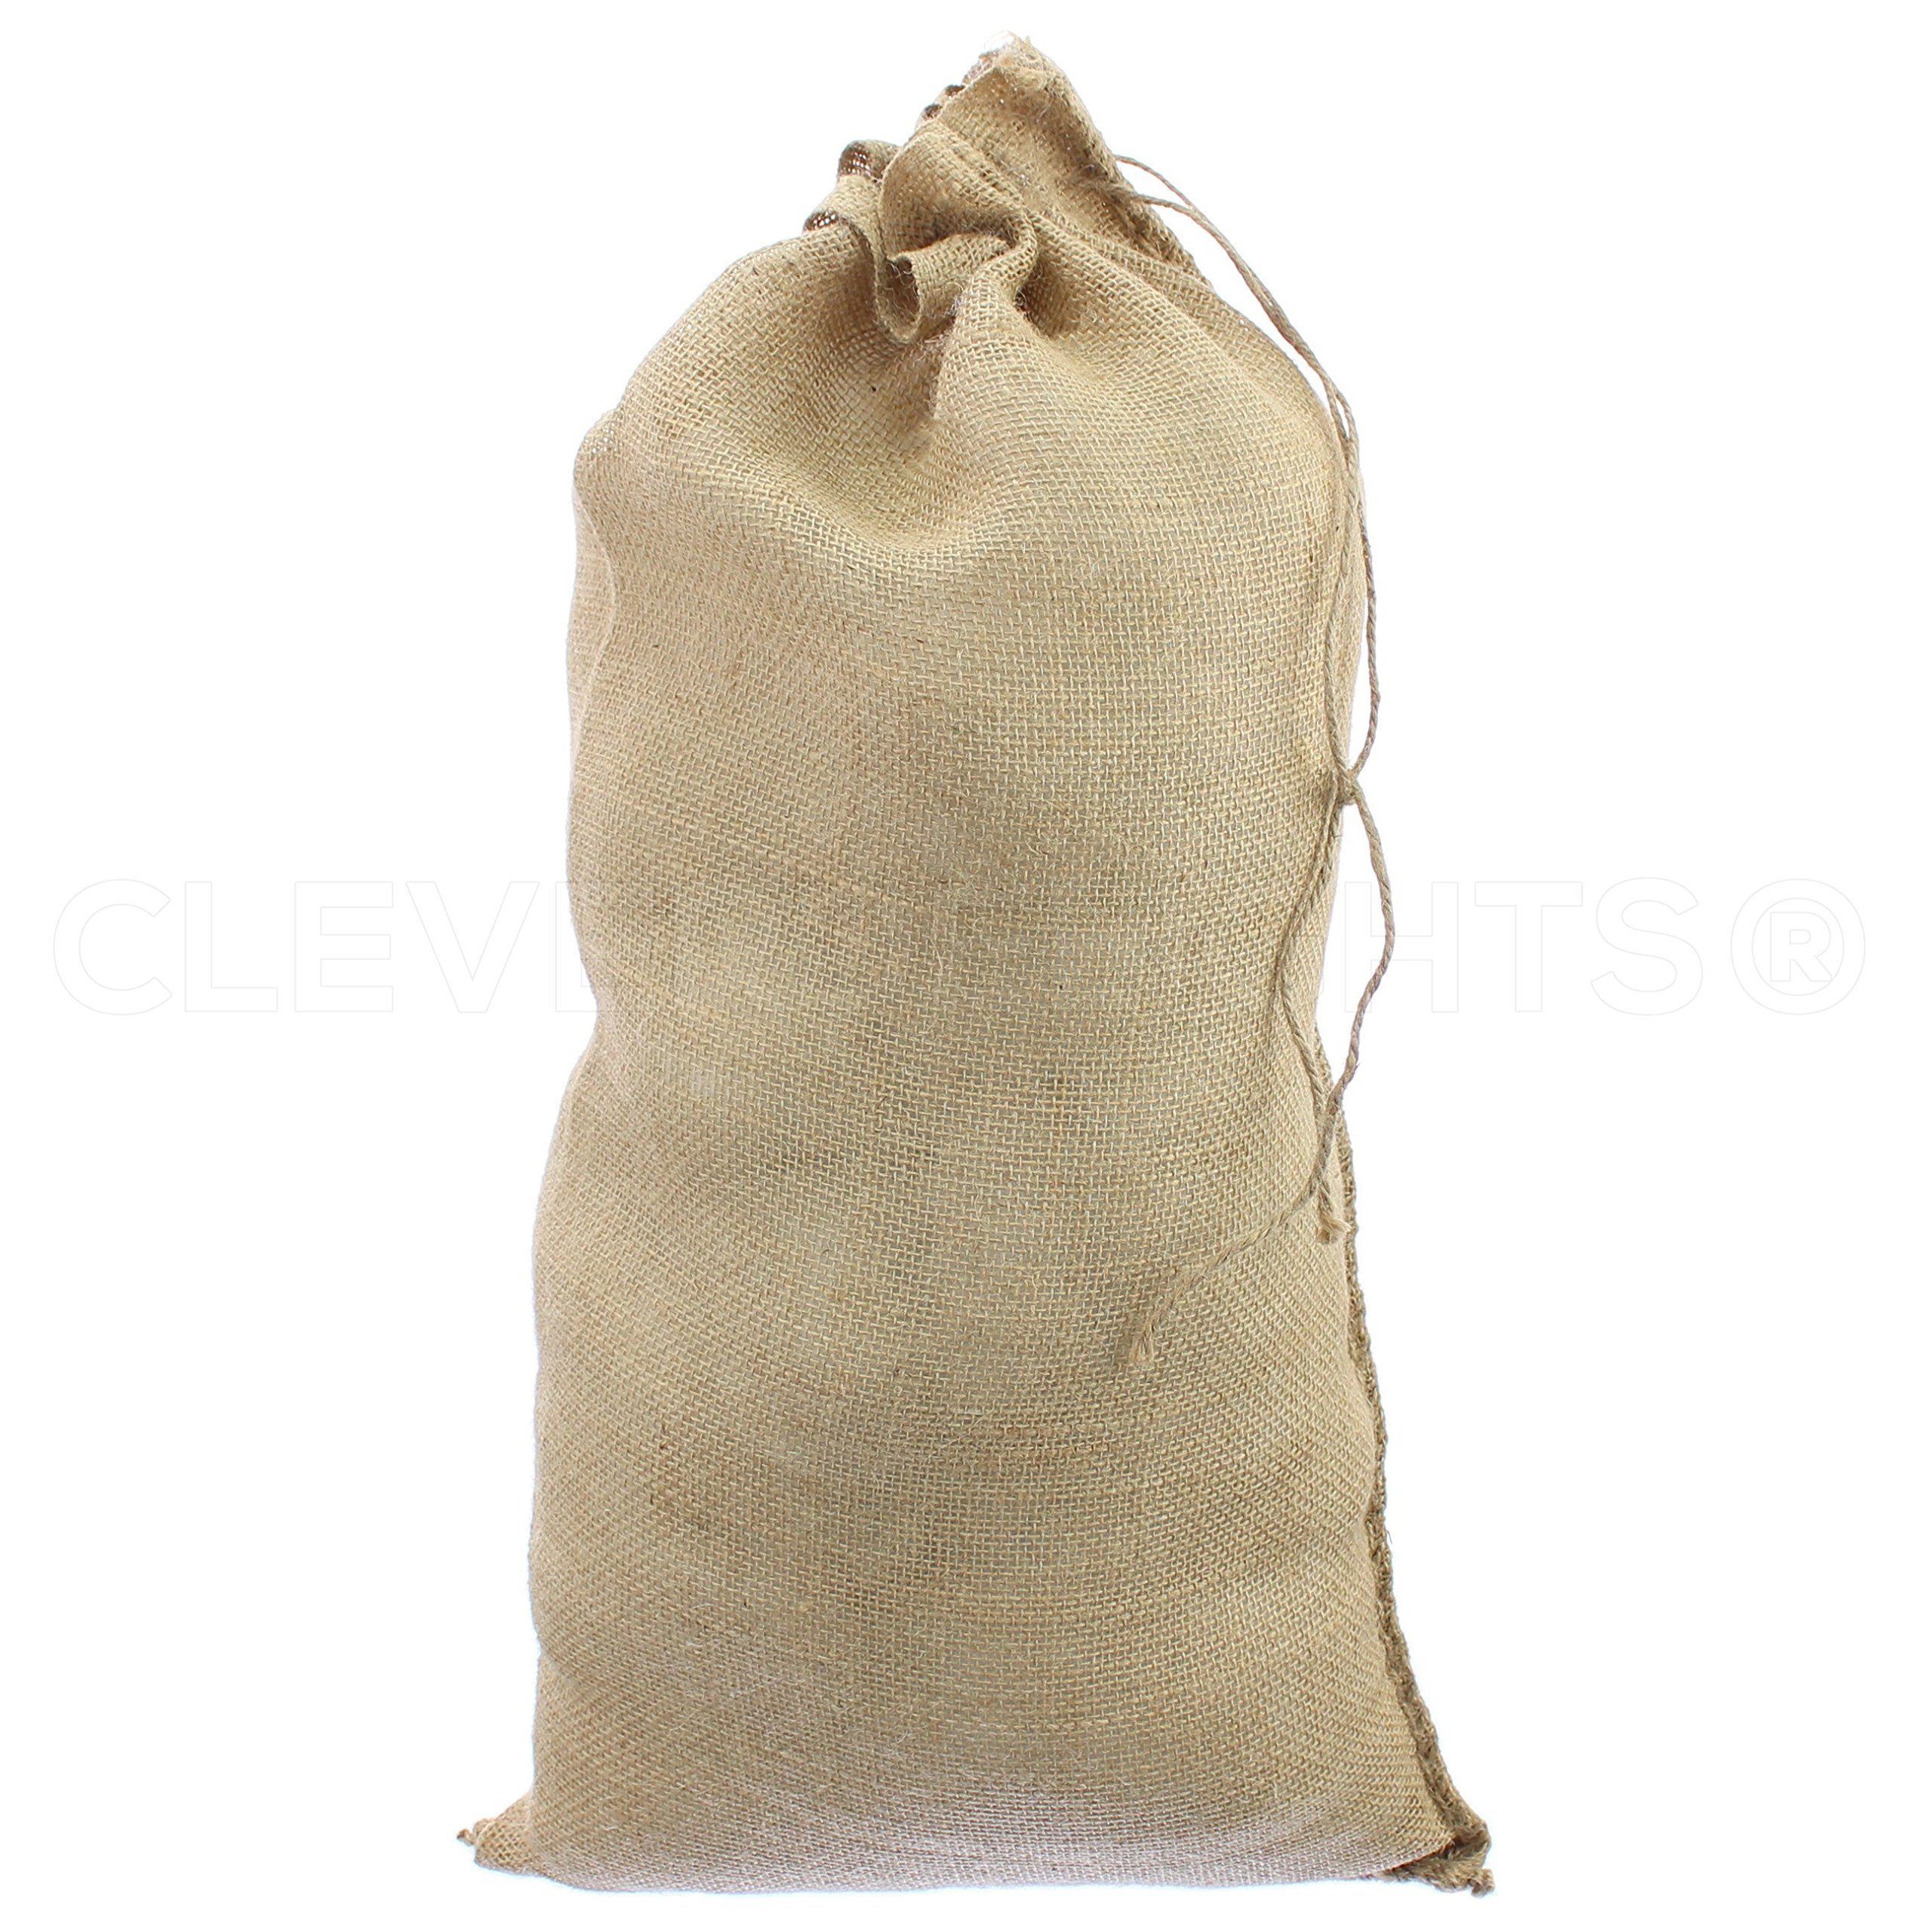 CleverDelights 14'' x 26'' Burlap Bags with Natural Jute Drawstring - 20 Pack - Large Burlap Pouch Gunny Sack Bag - 14x26 inch